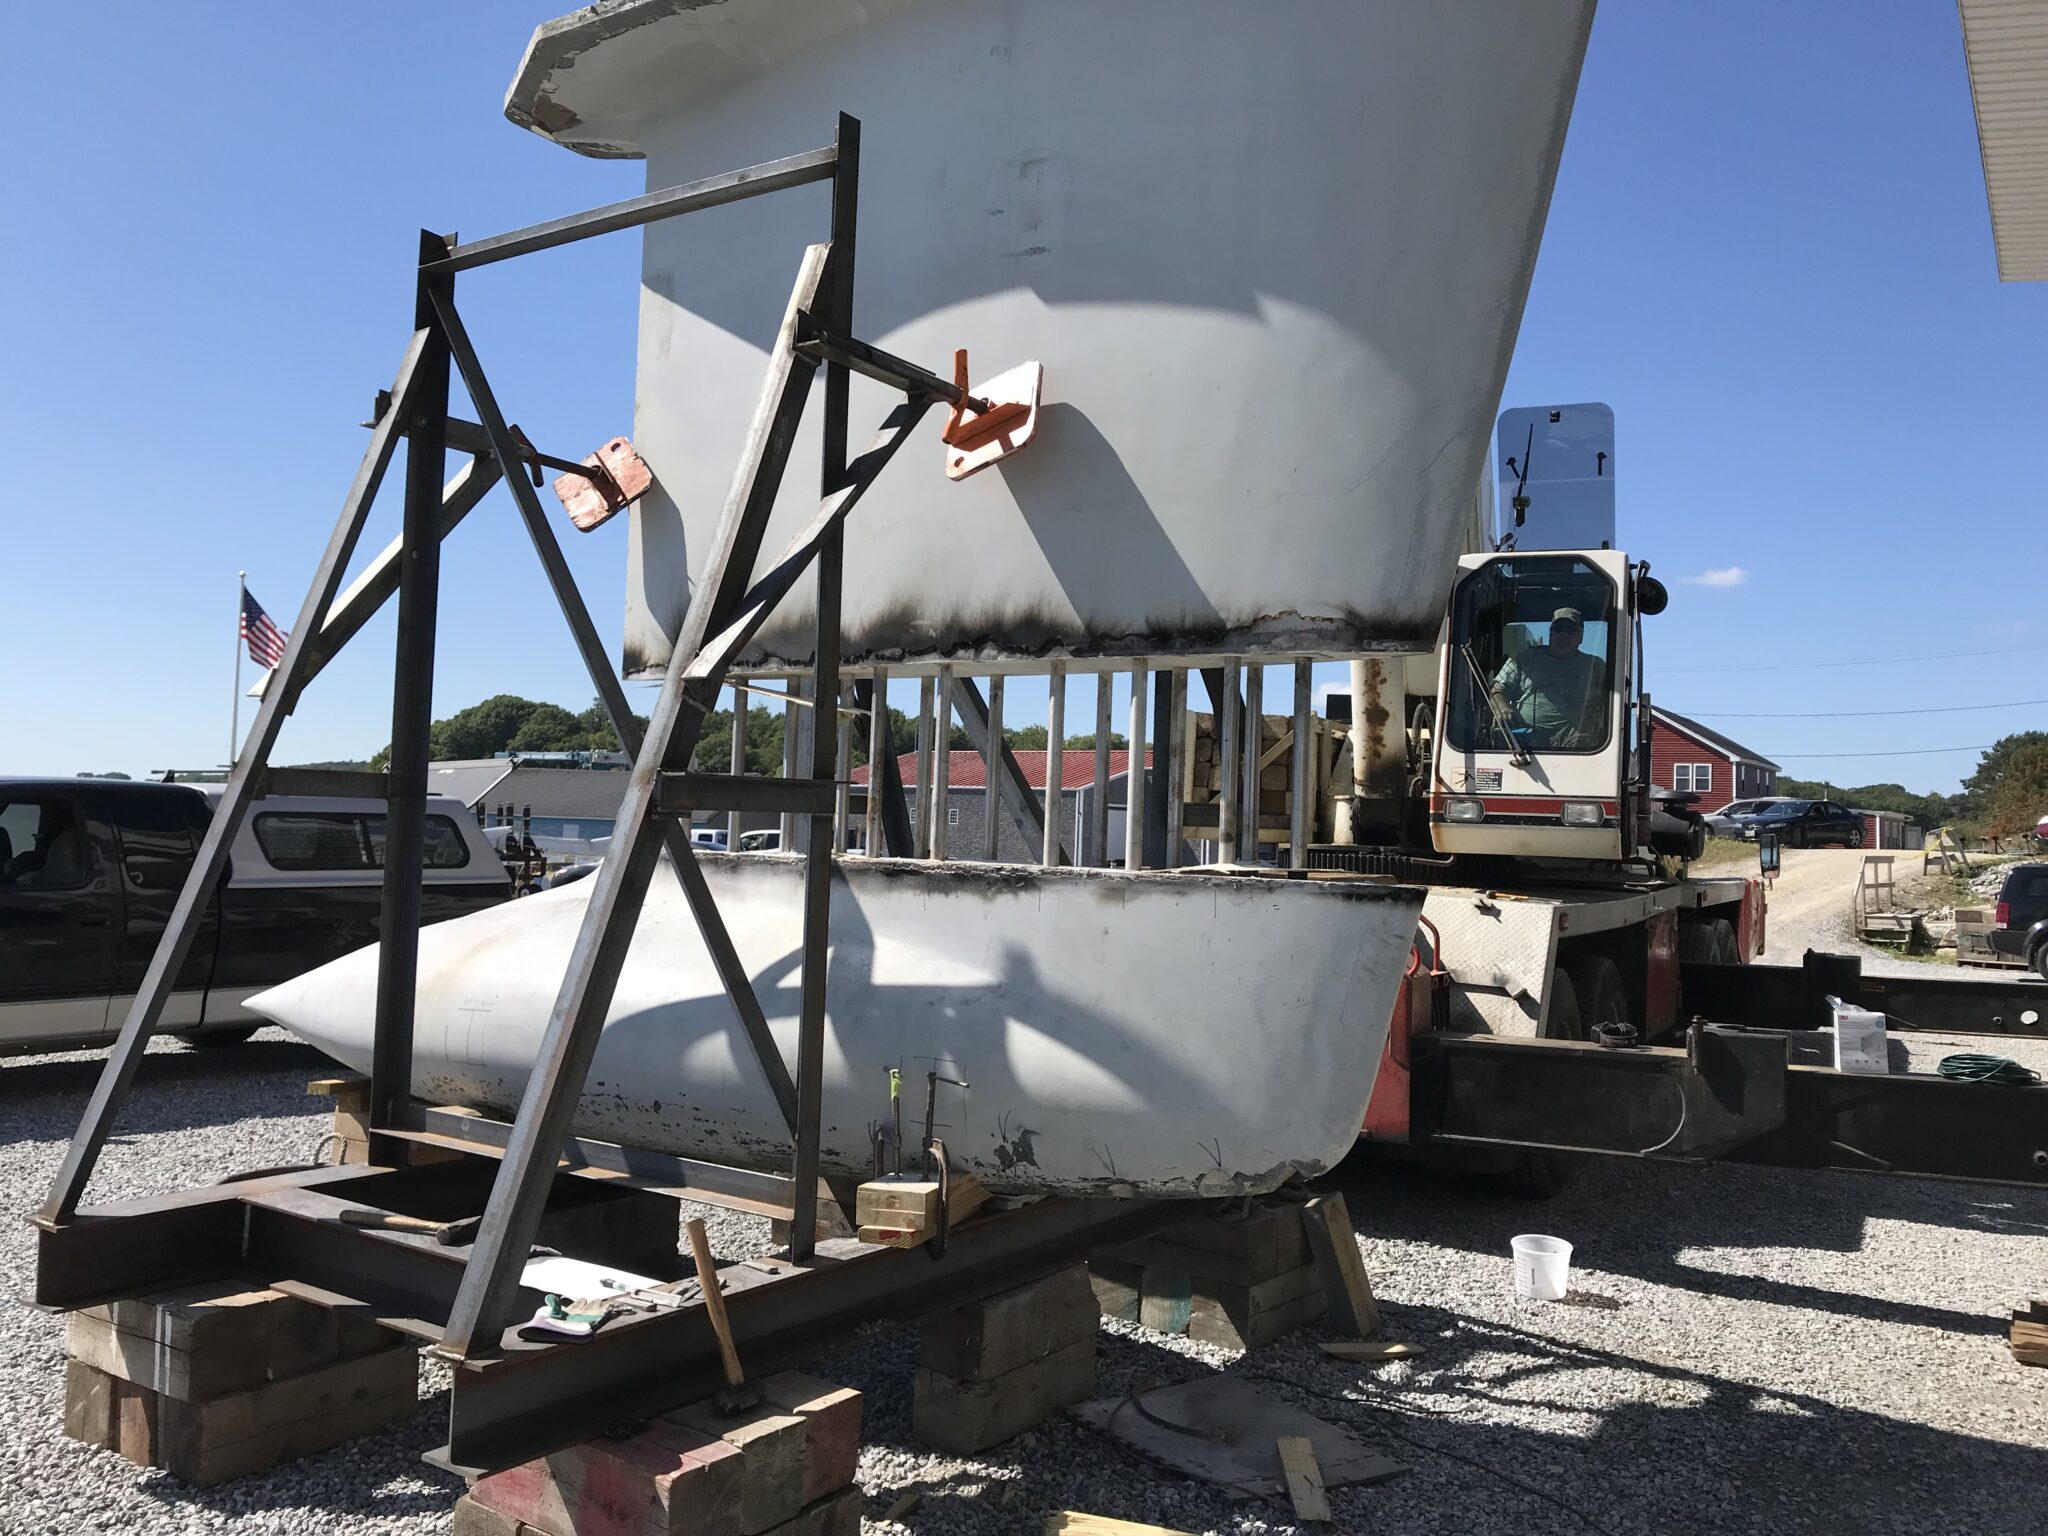 Special moveable keel-lifting lugs were fabricated to lift the keel from the keel bulb, using the yard's crane.